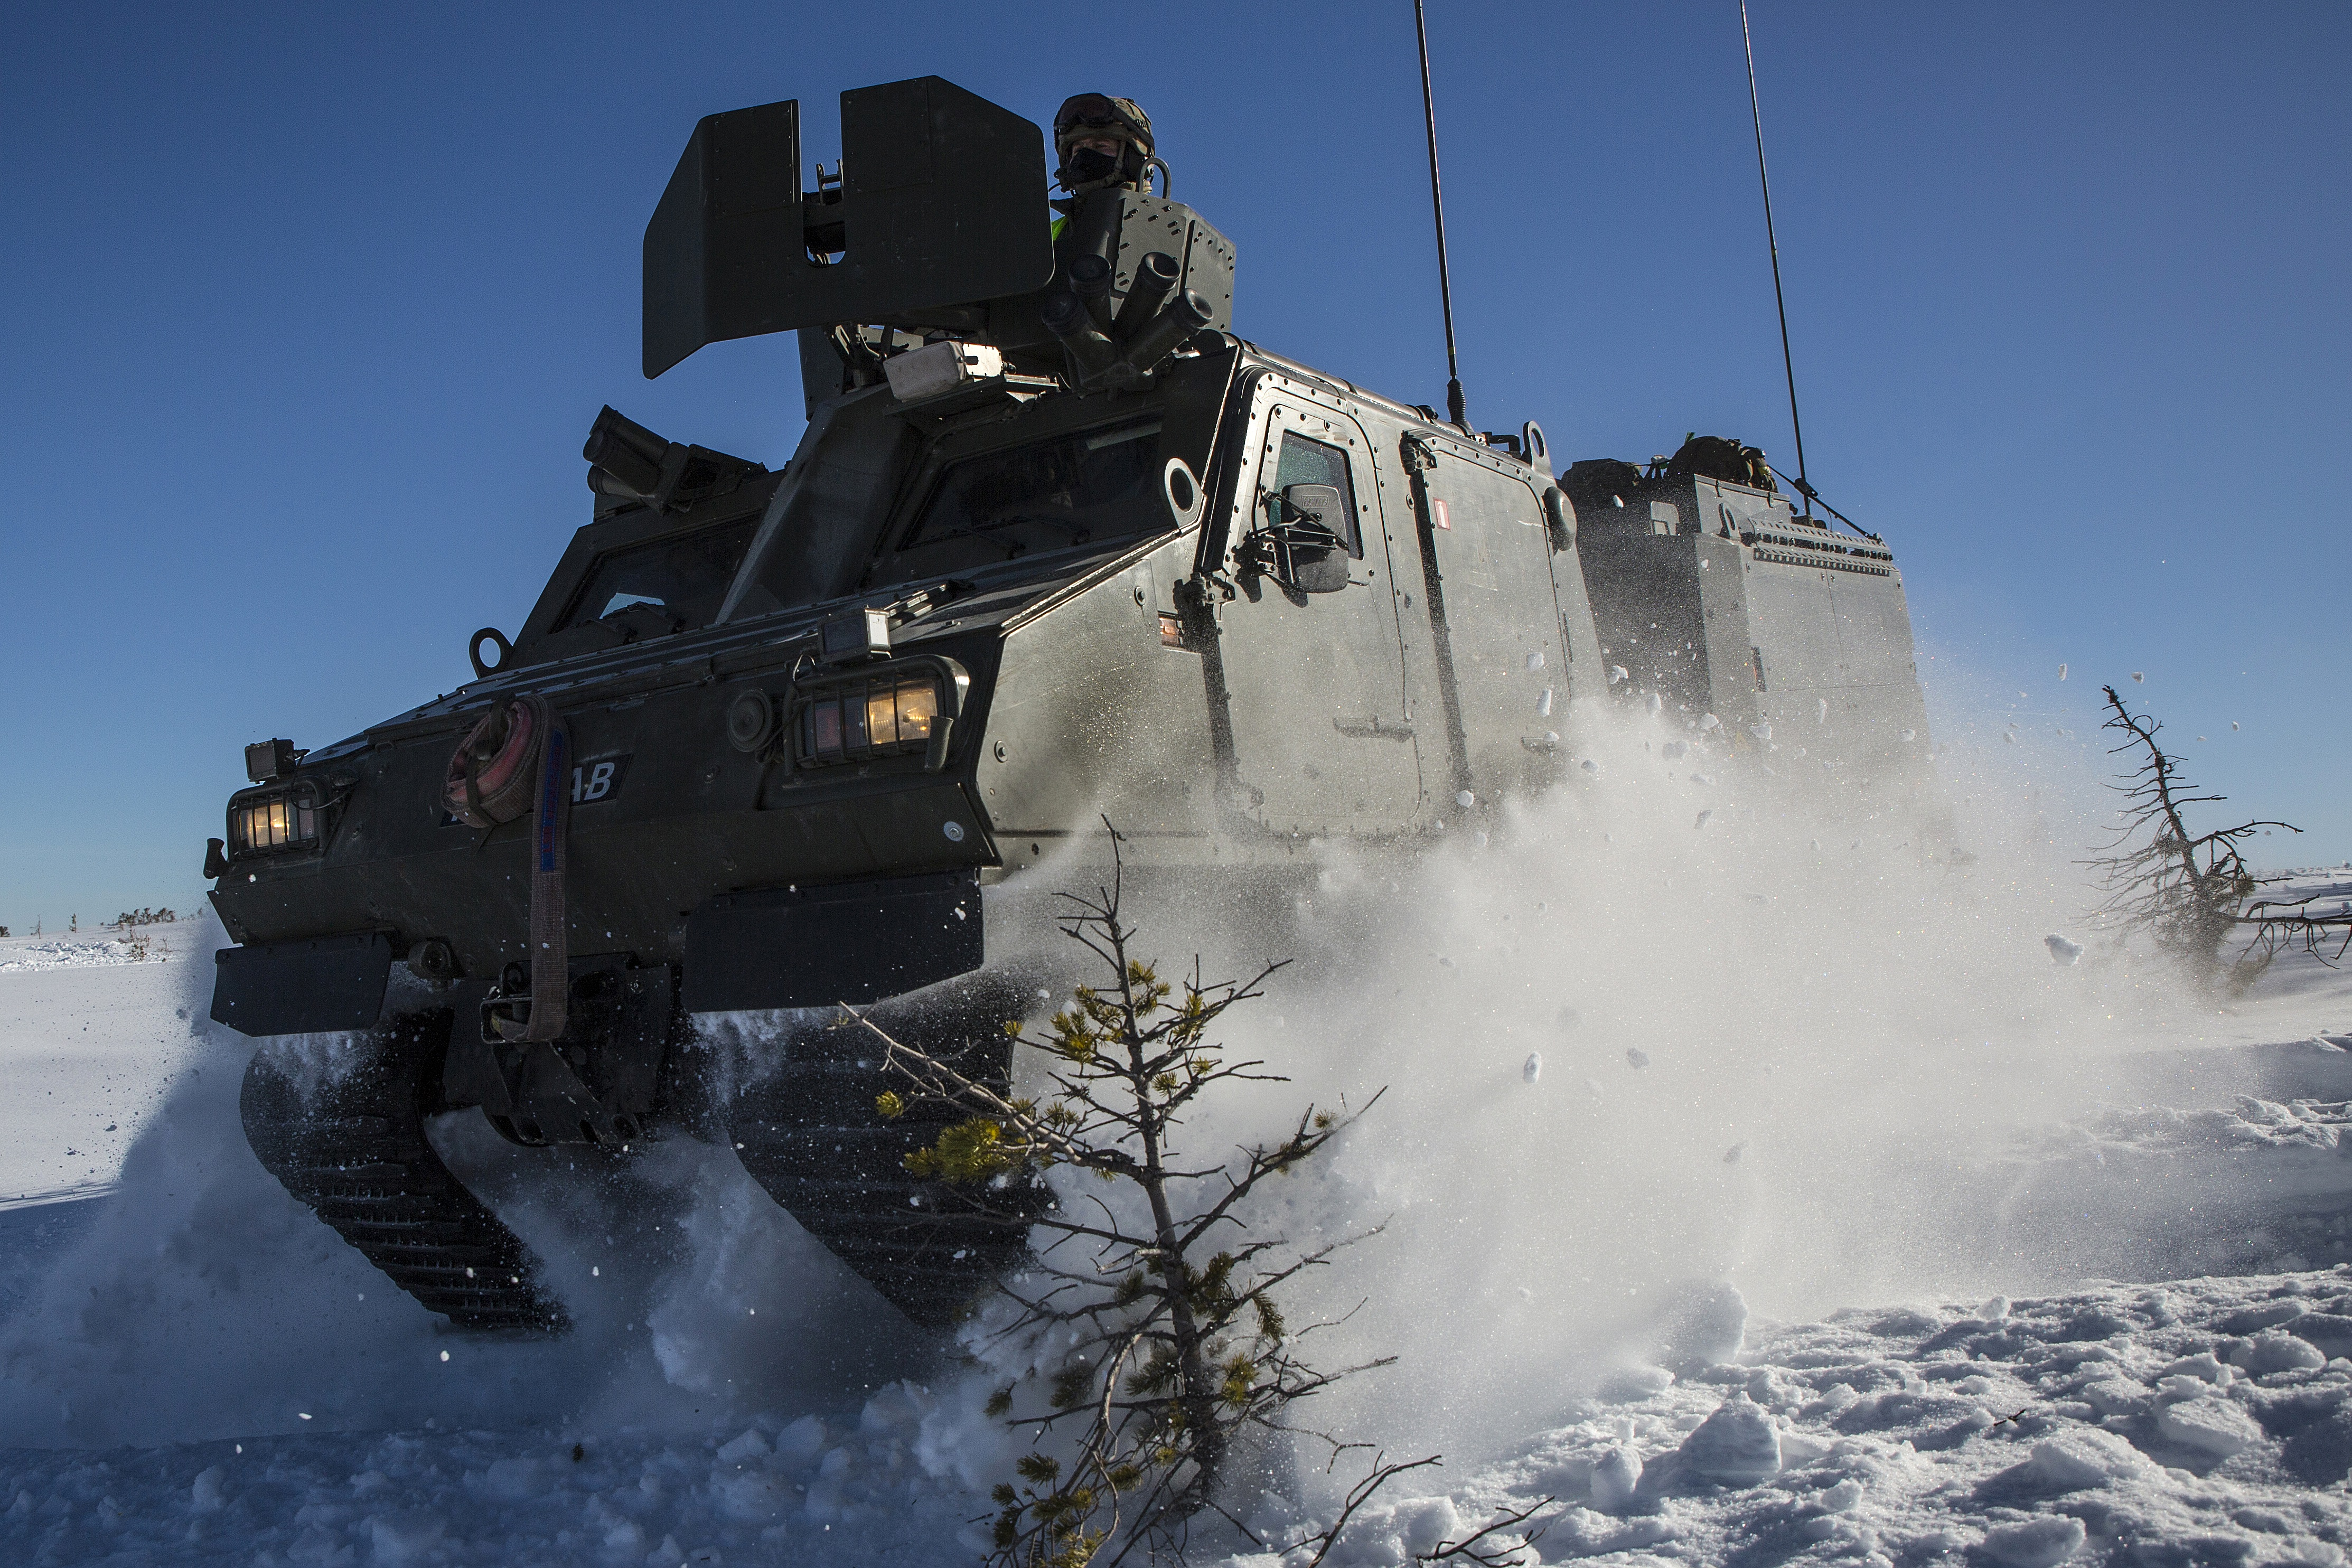 With an increasing footprint in the Arctic, the Corps may